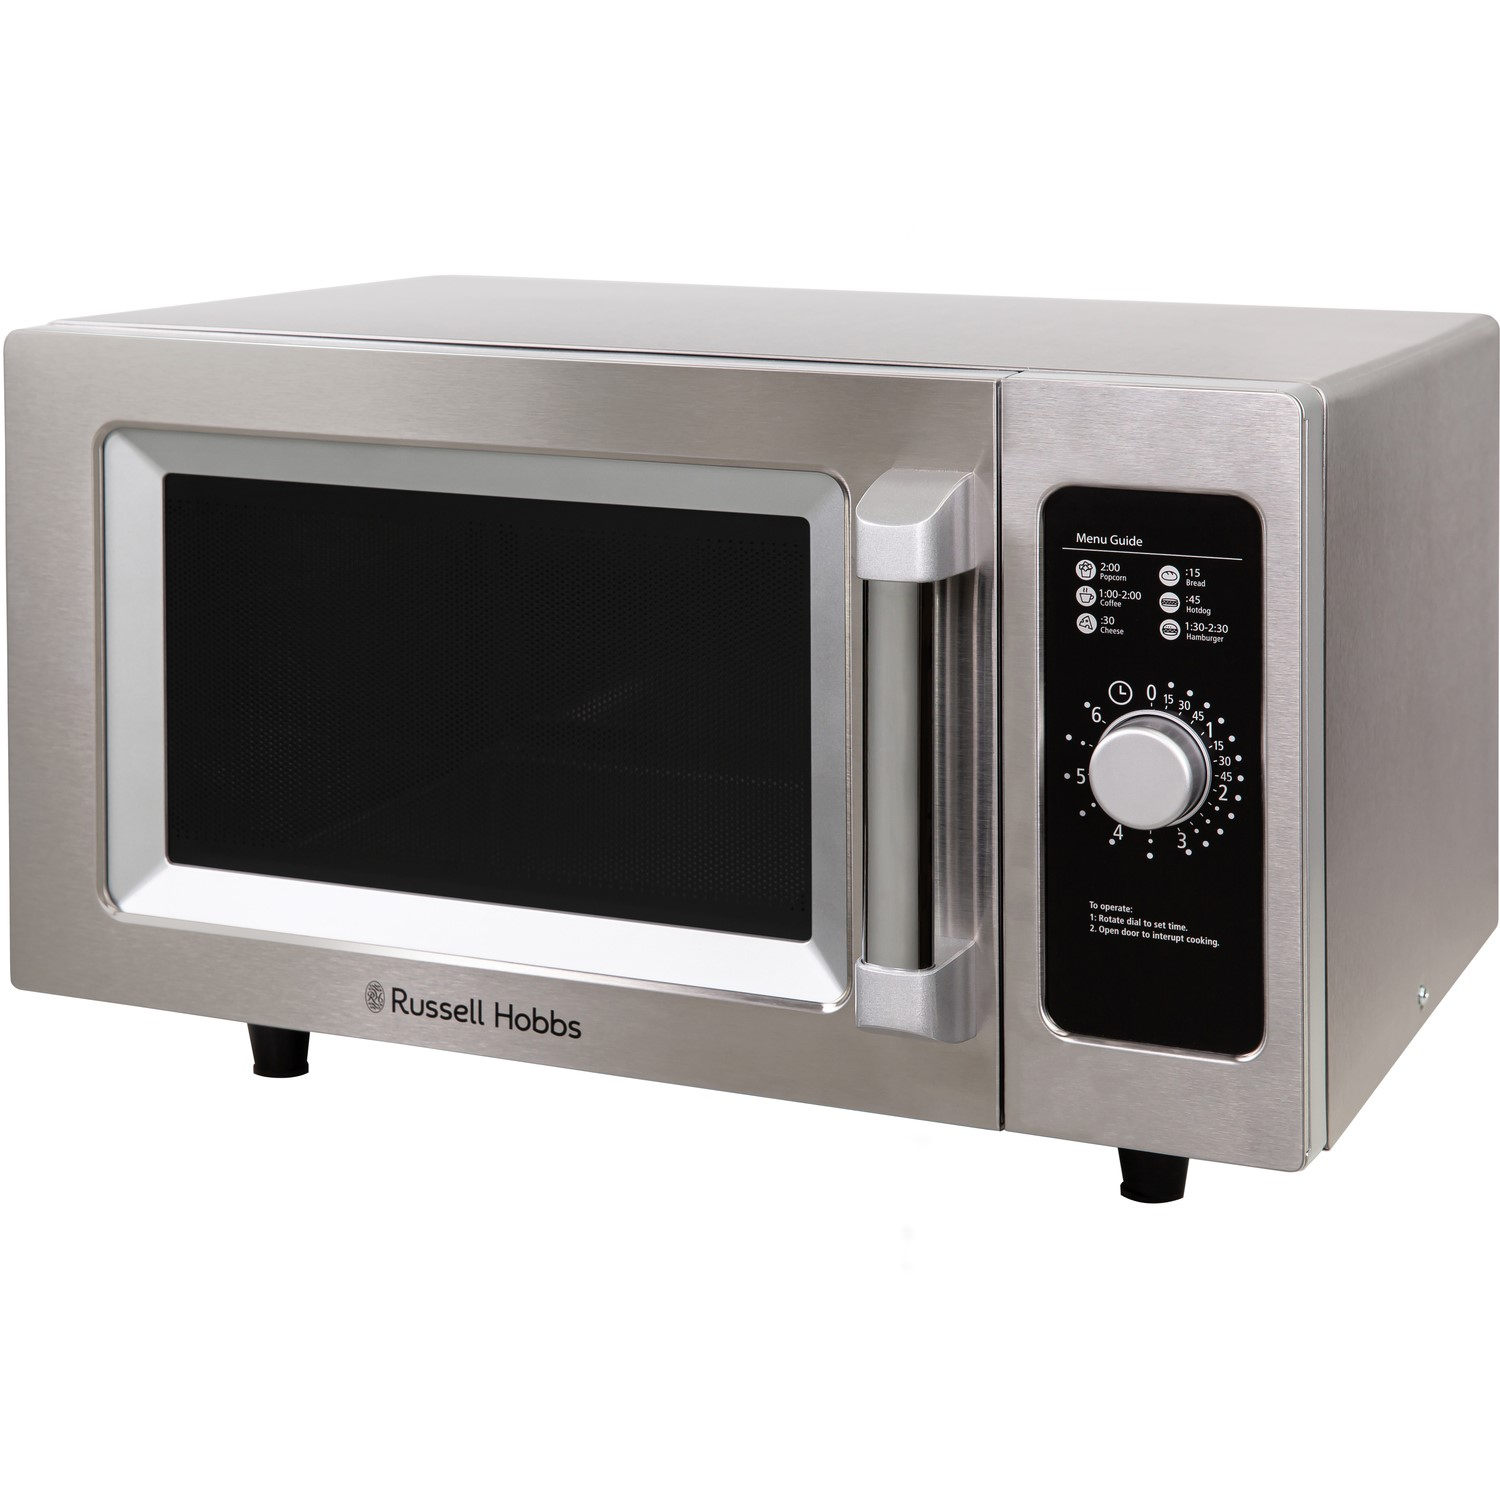 Russell Hobbs RHCM2576SS 25L Flatbed Microwave Oven - Stainless Steel | Appliances Direct